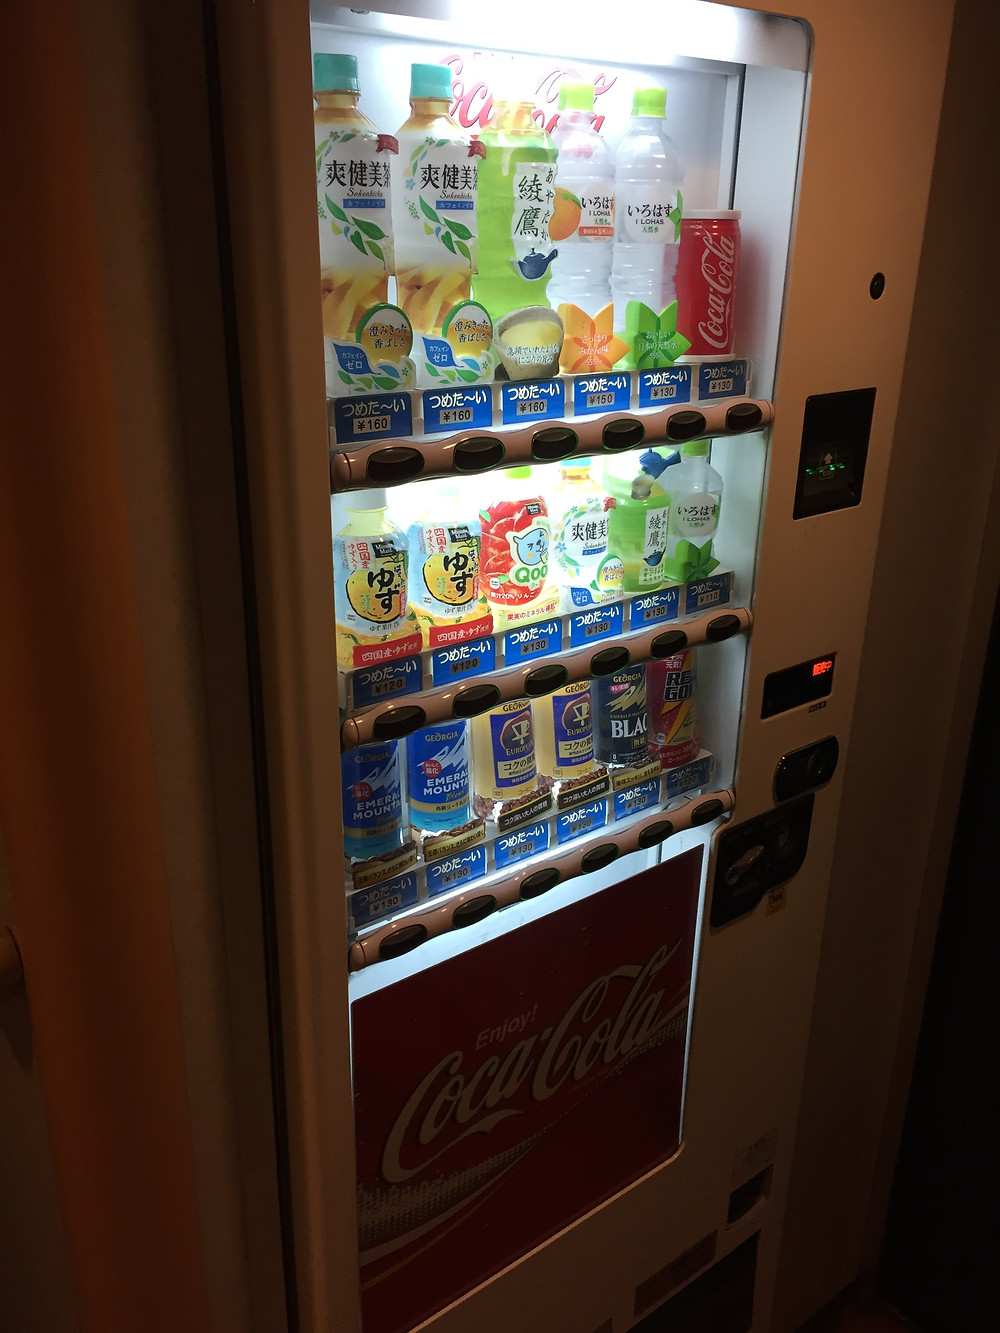 Vending machine at limited express Shiokaze